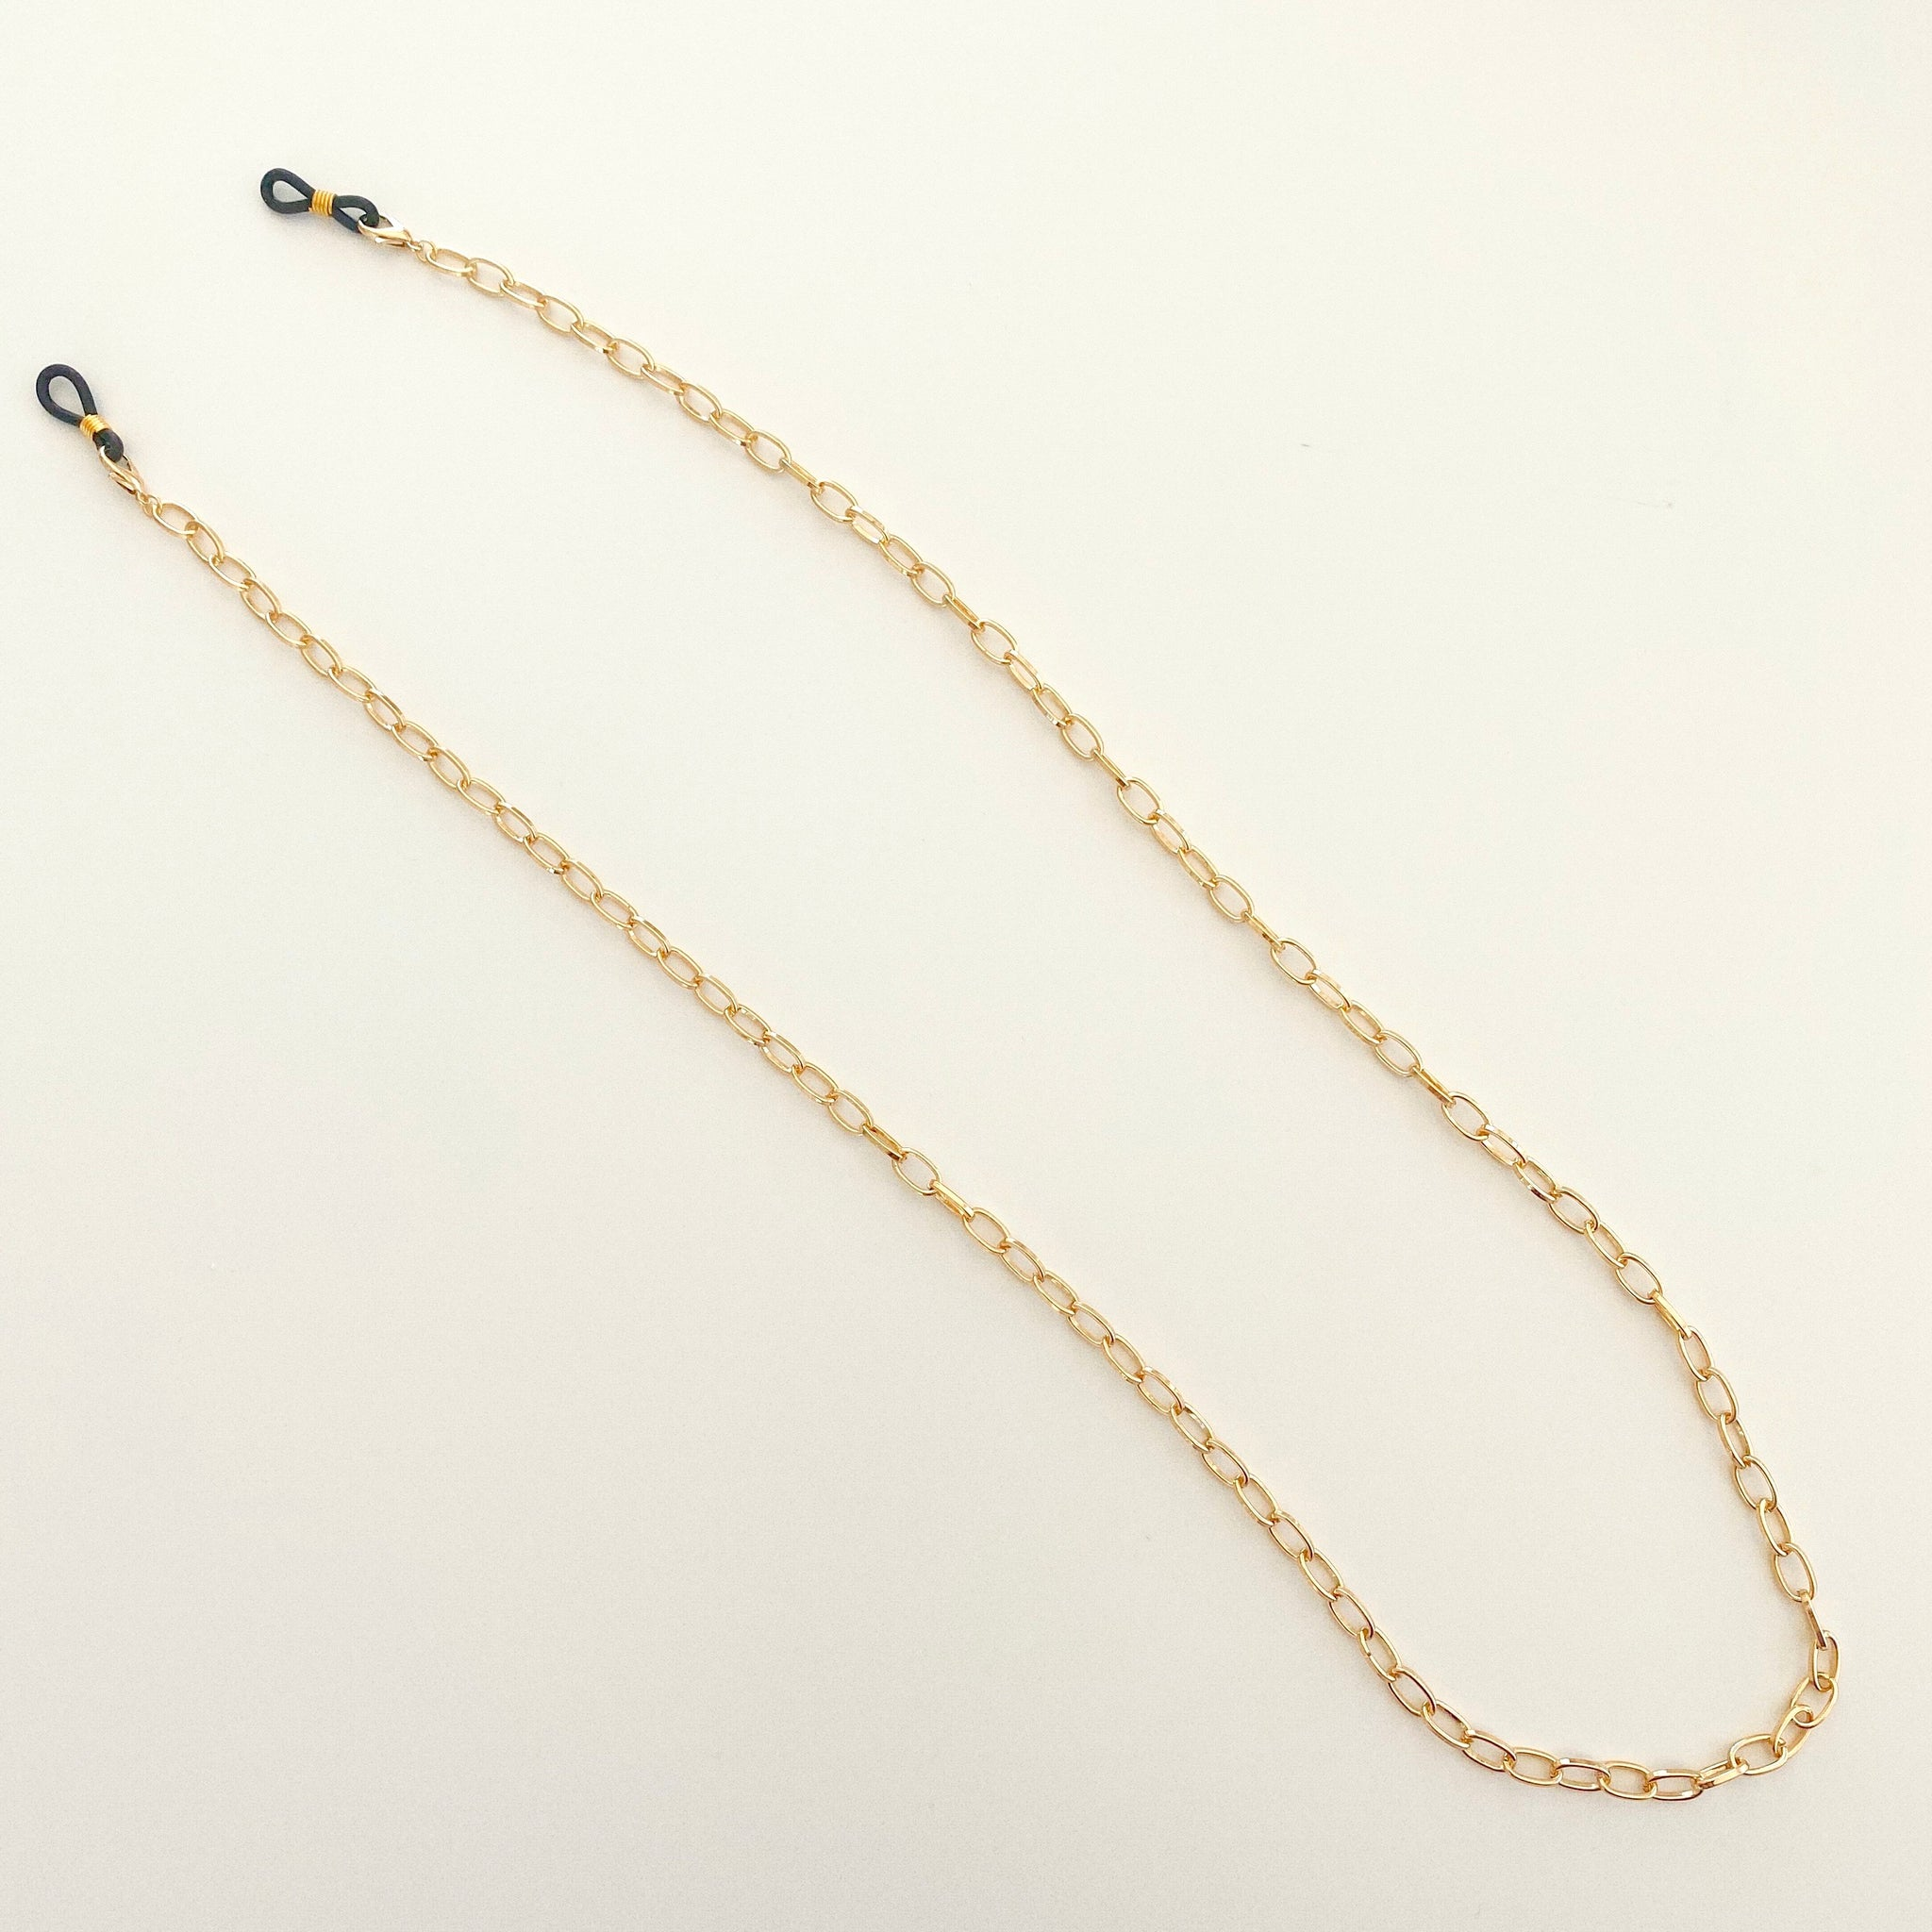 NEW ! EyeWear Chain black